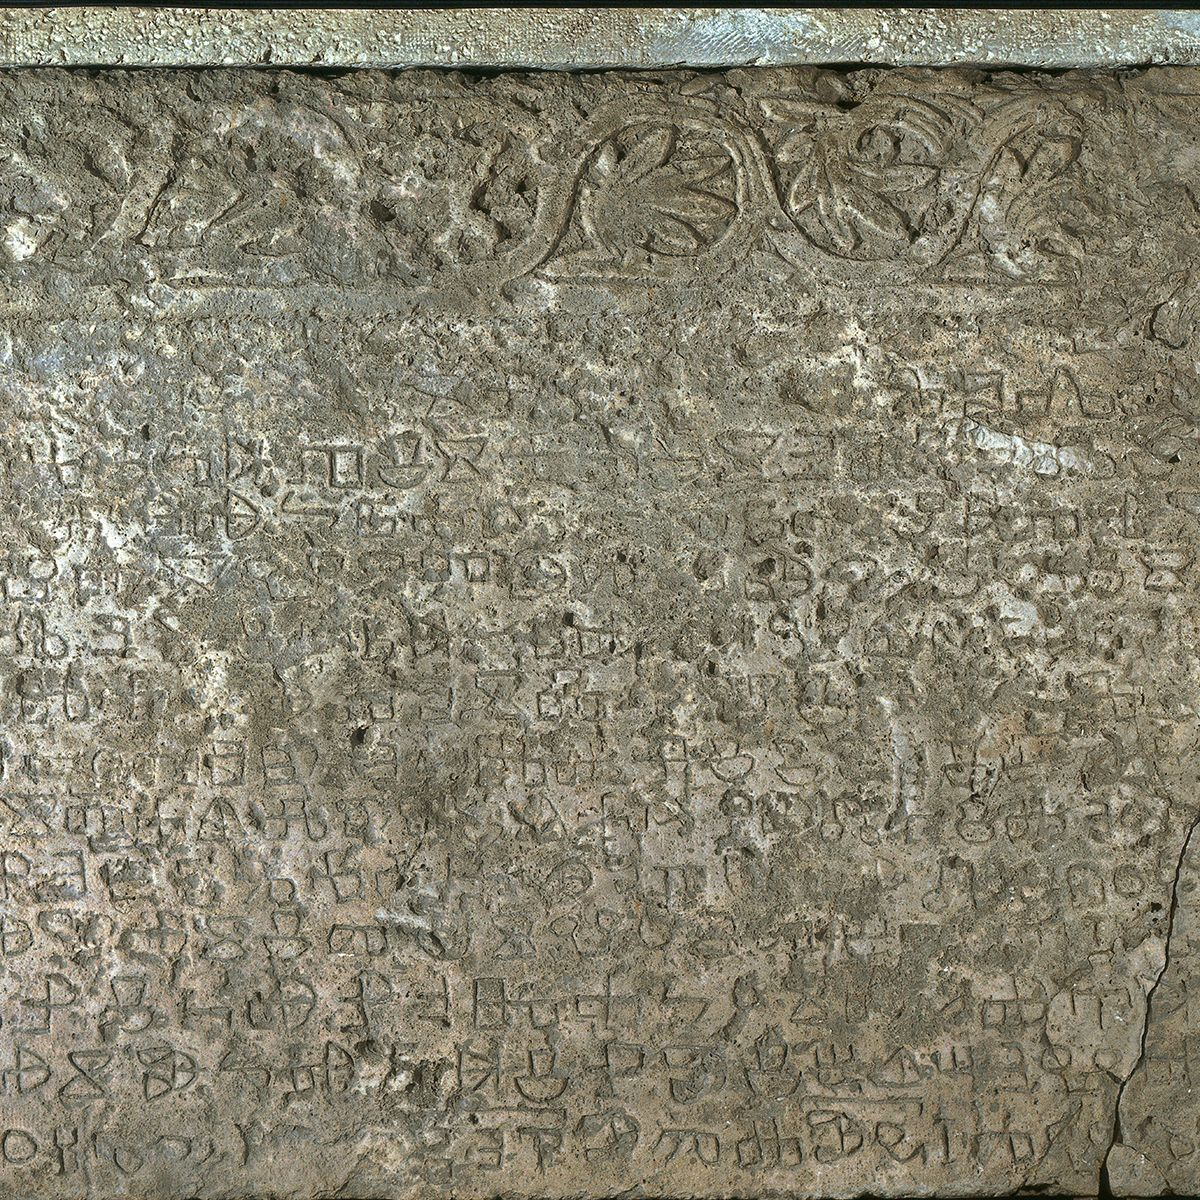 Baska Tablet 1100 Early Inscription In The Croatian Language In Glagolitic Script Photographer Damir Fabijanic Croatian Language Croatia Croatian